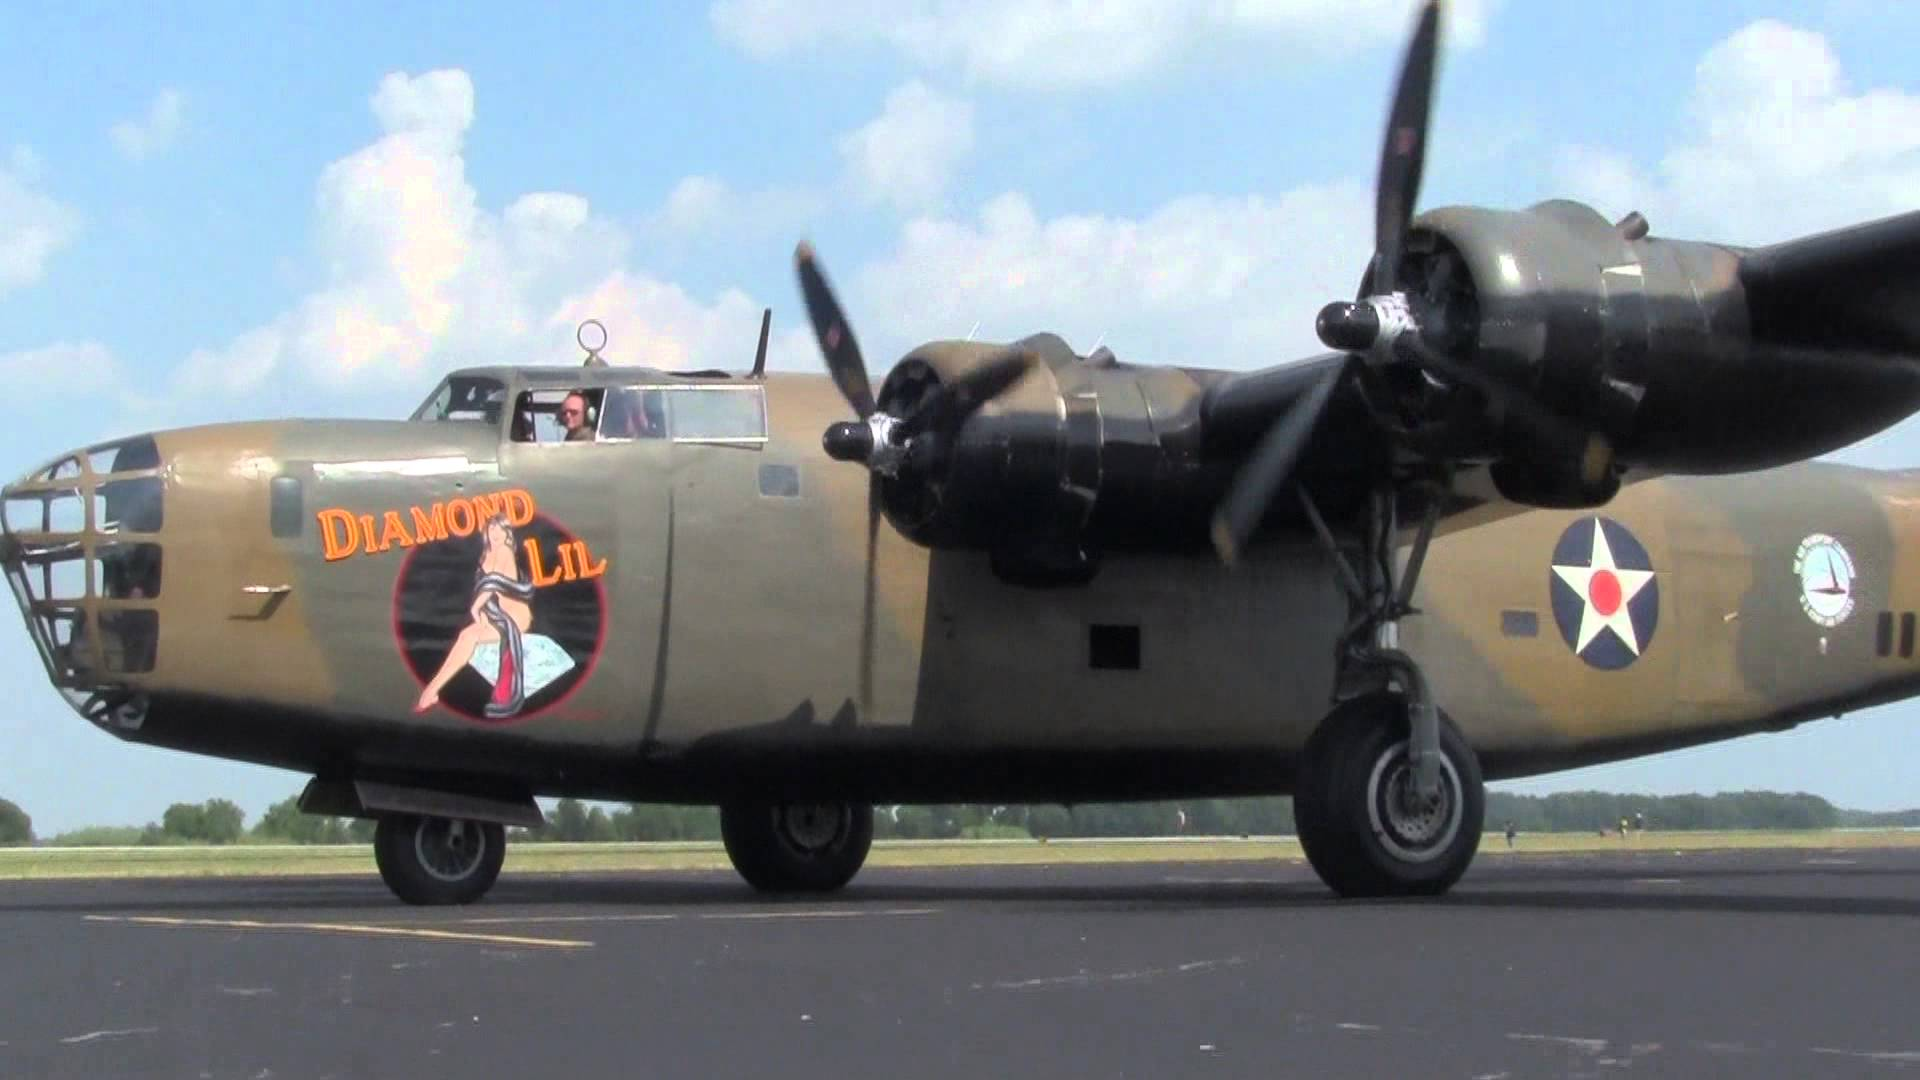 1920x1080 - Consolidated B-24 Liberator Wallpapers 22